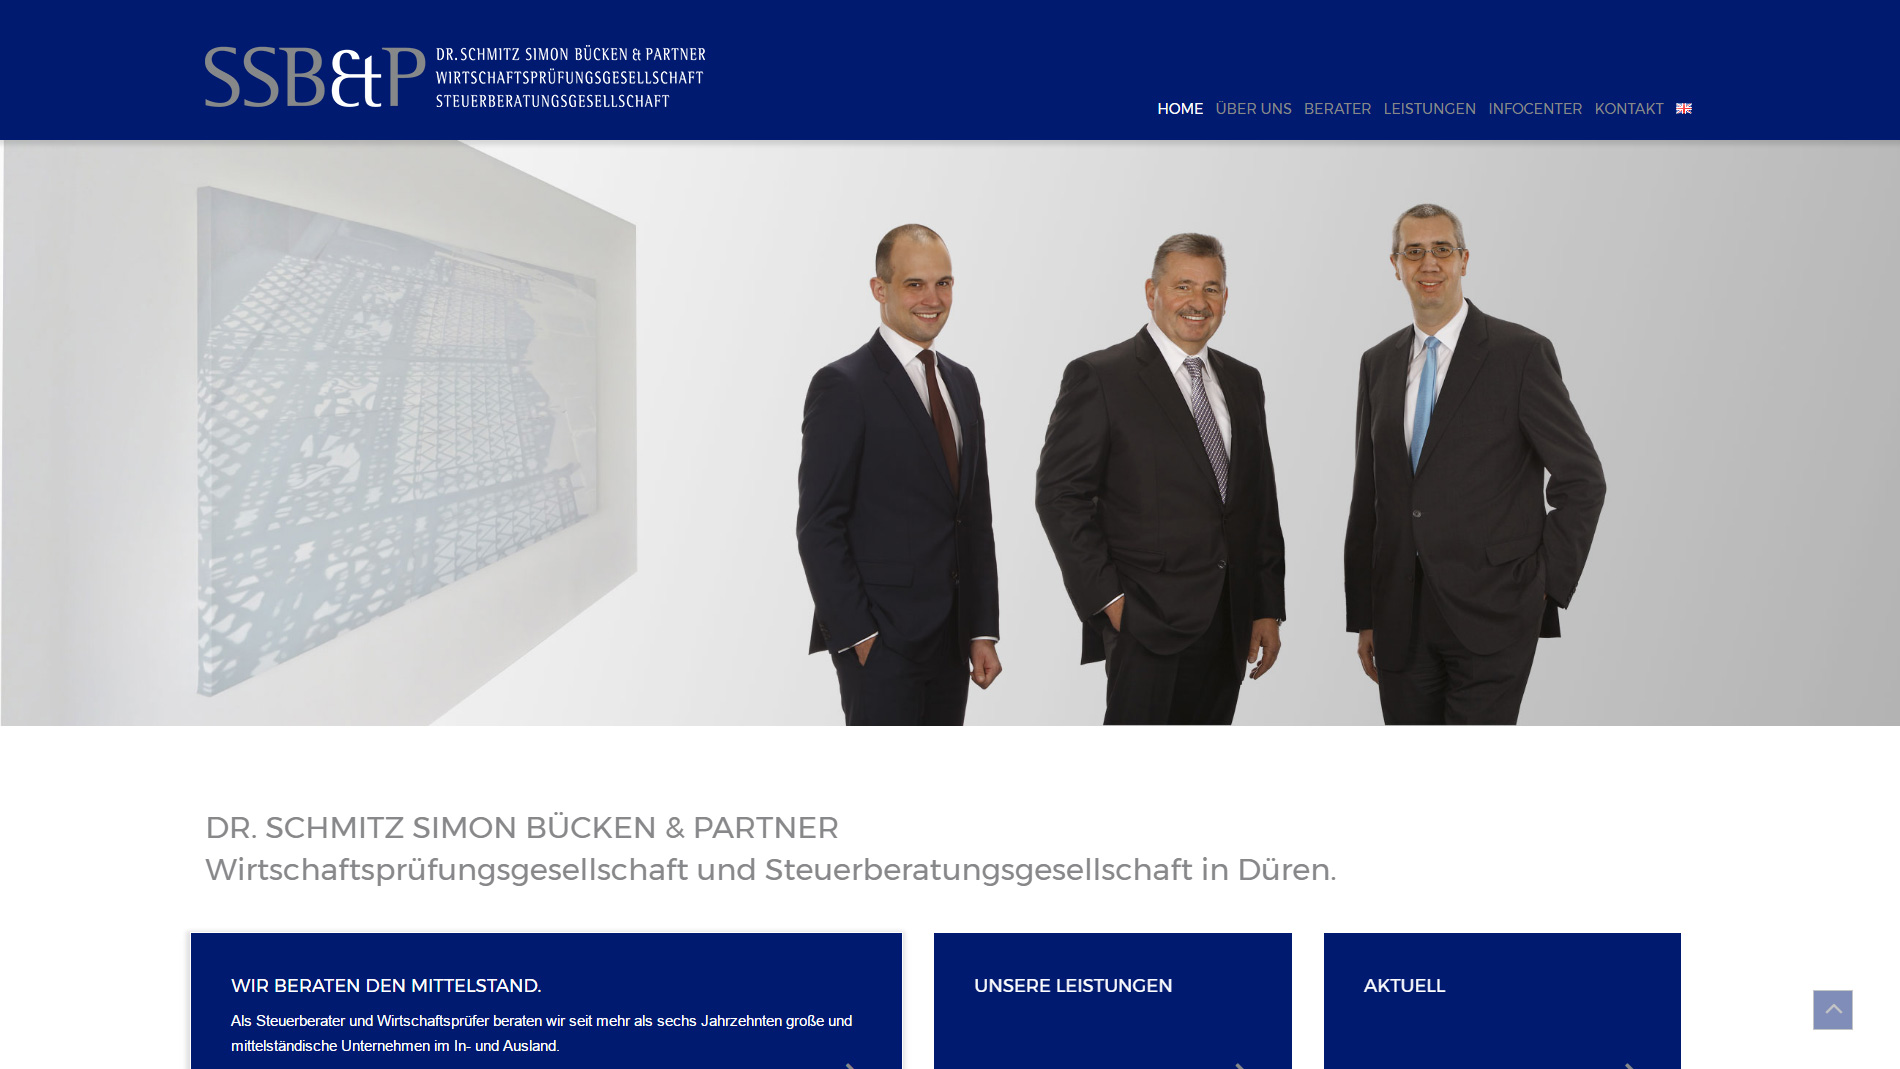 DR. SCHMITZ SIMON BÜCKEN & PARTNER